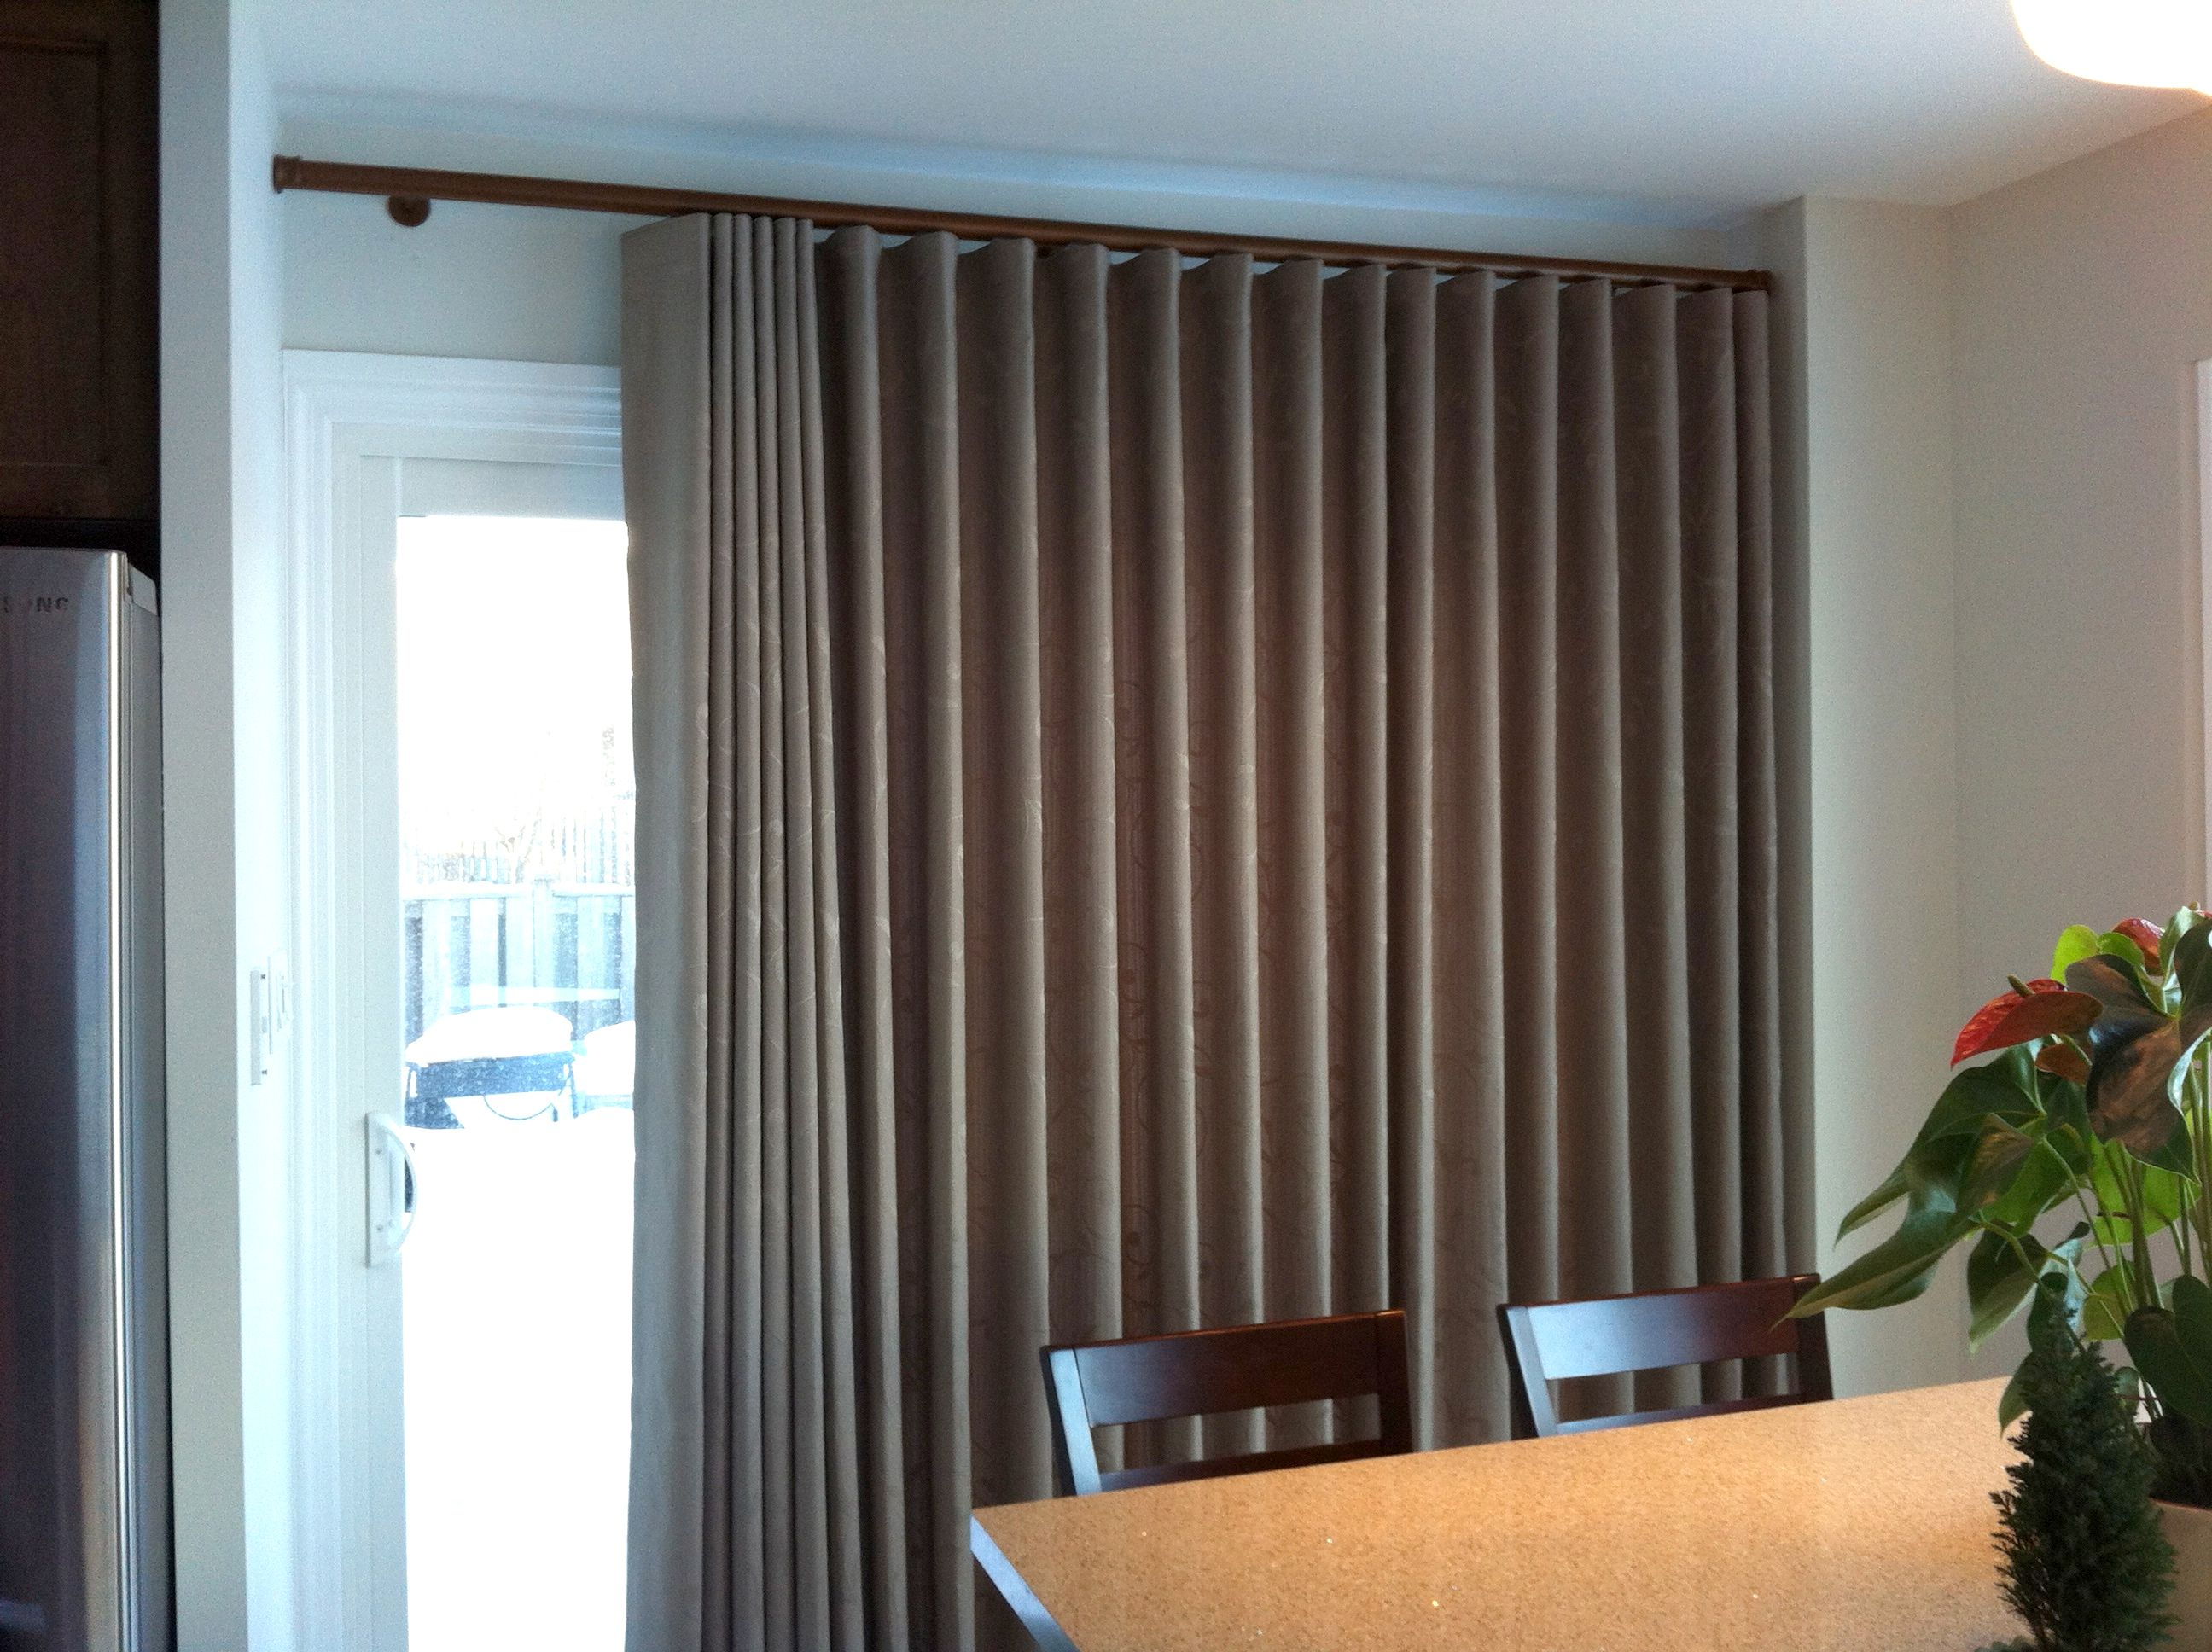 well and sliding curtains treatment id interior modern brown glass windows two tone as compelling white handmade for double glorious open ideas in accent window stylish chairs popular fabric single space drapes inspiration